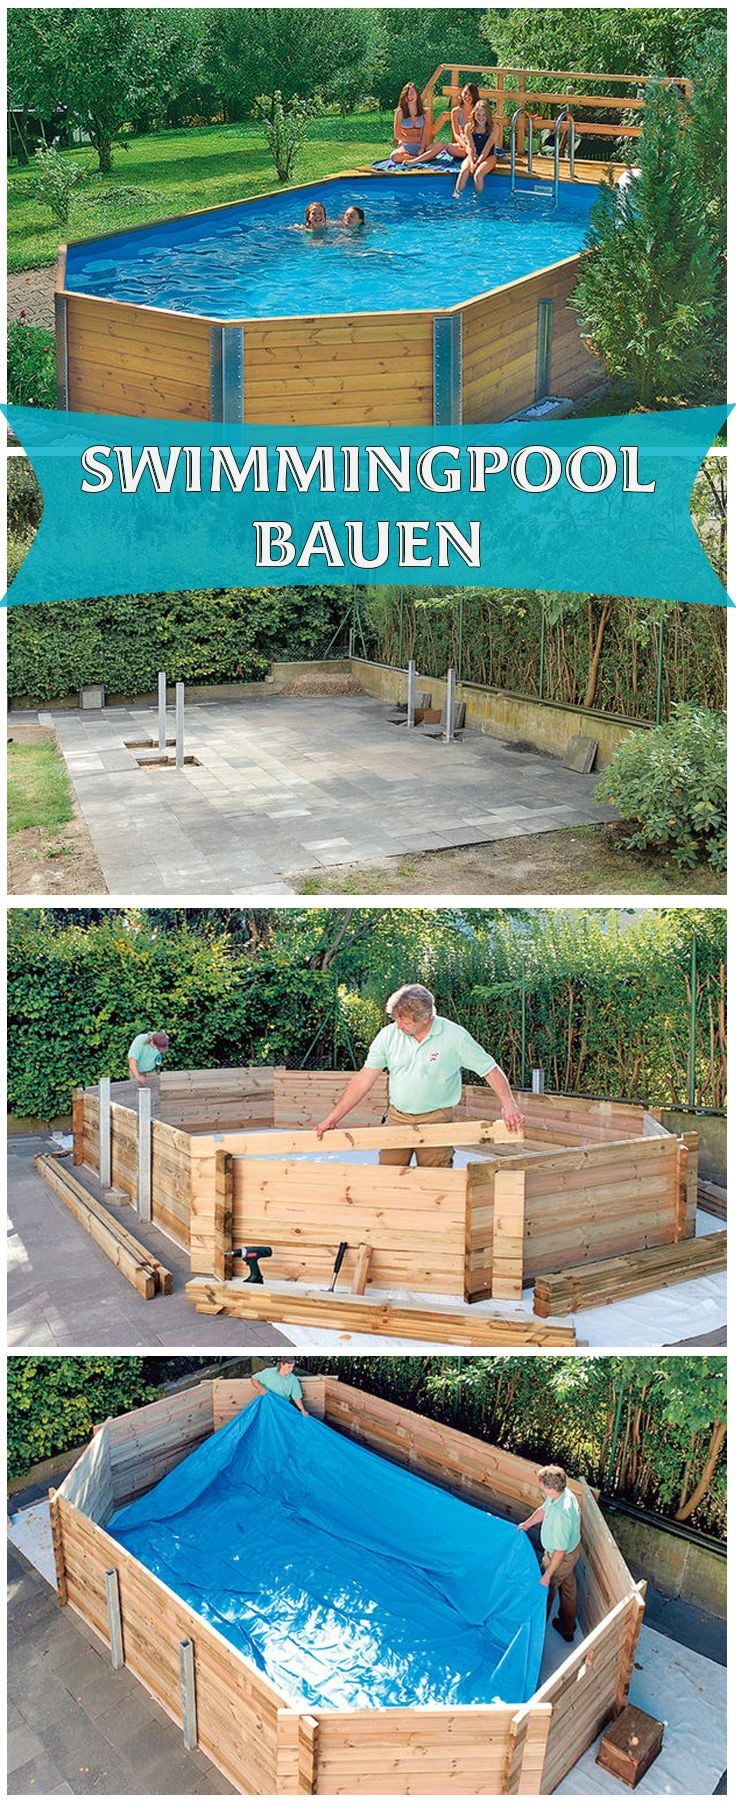 Swimmingpool bauen | How to build a pool in your garden | might need this one day | garden